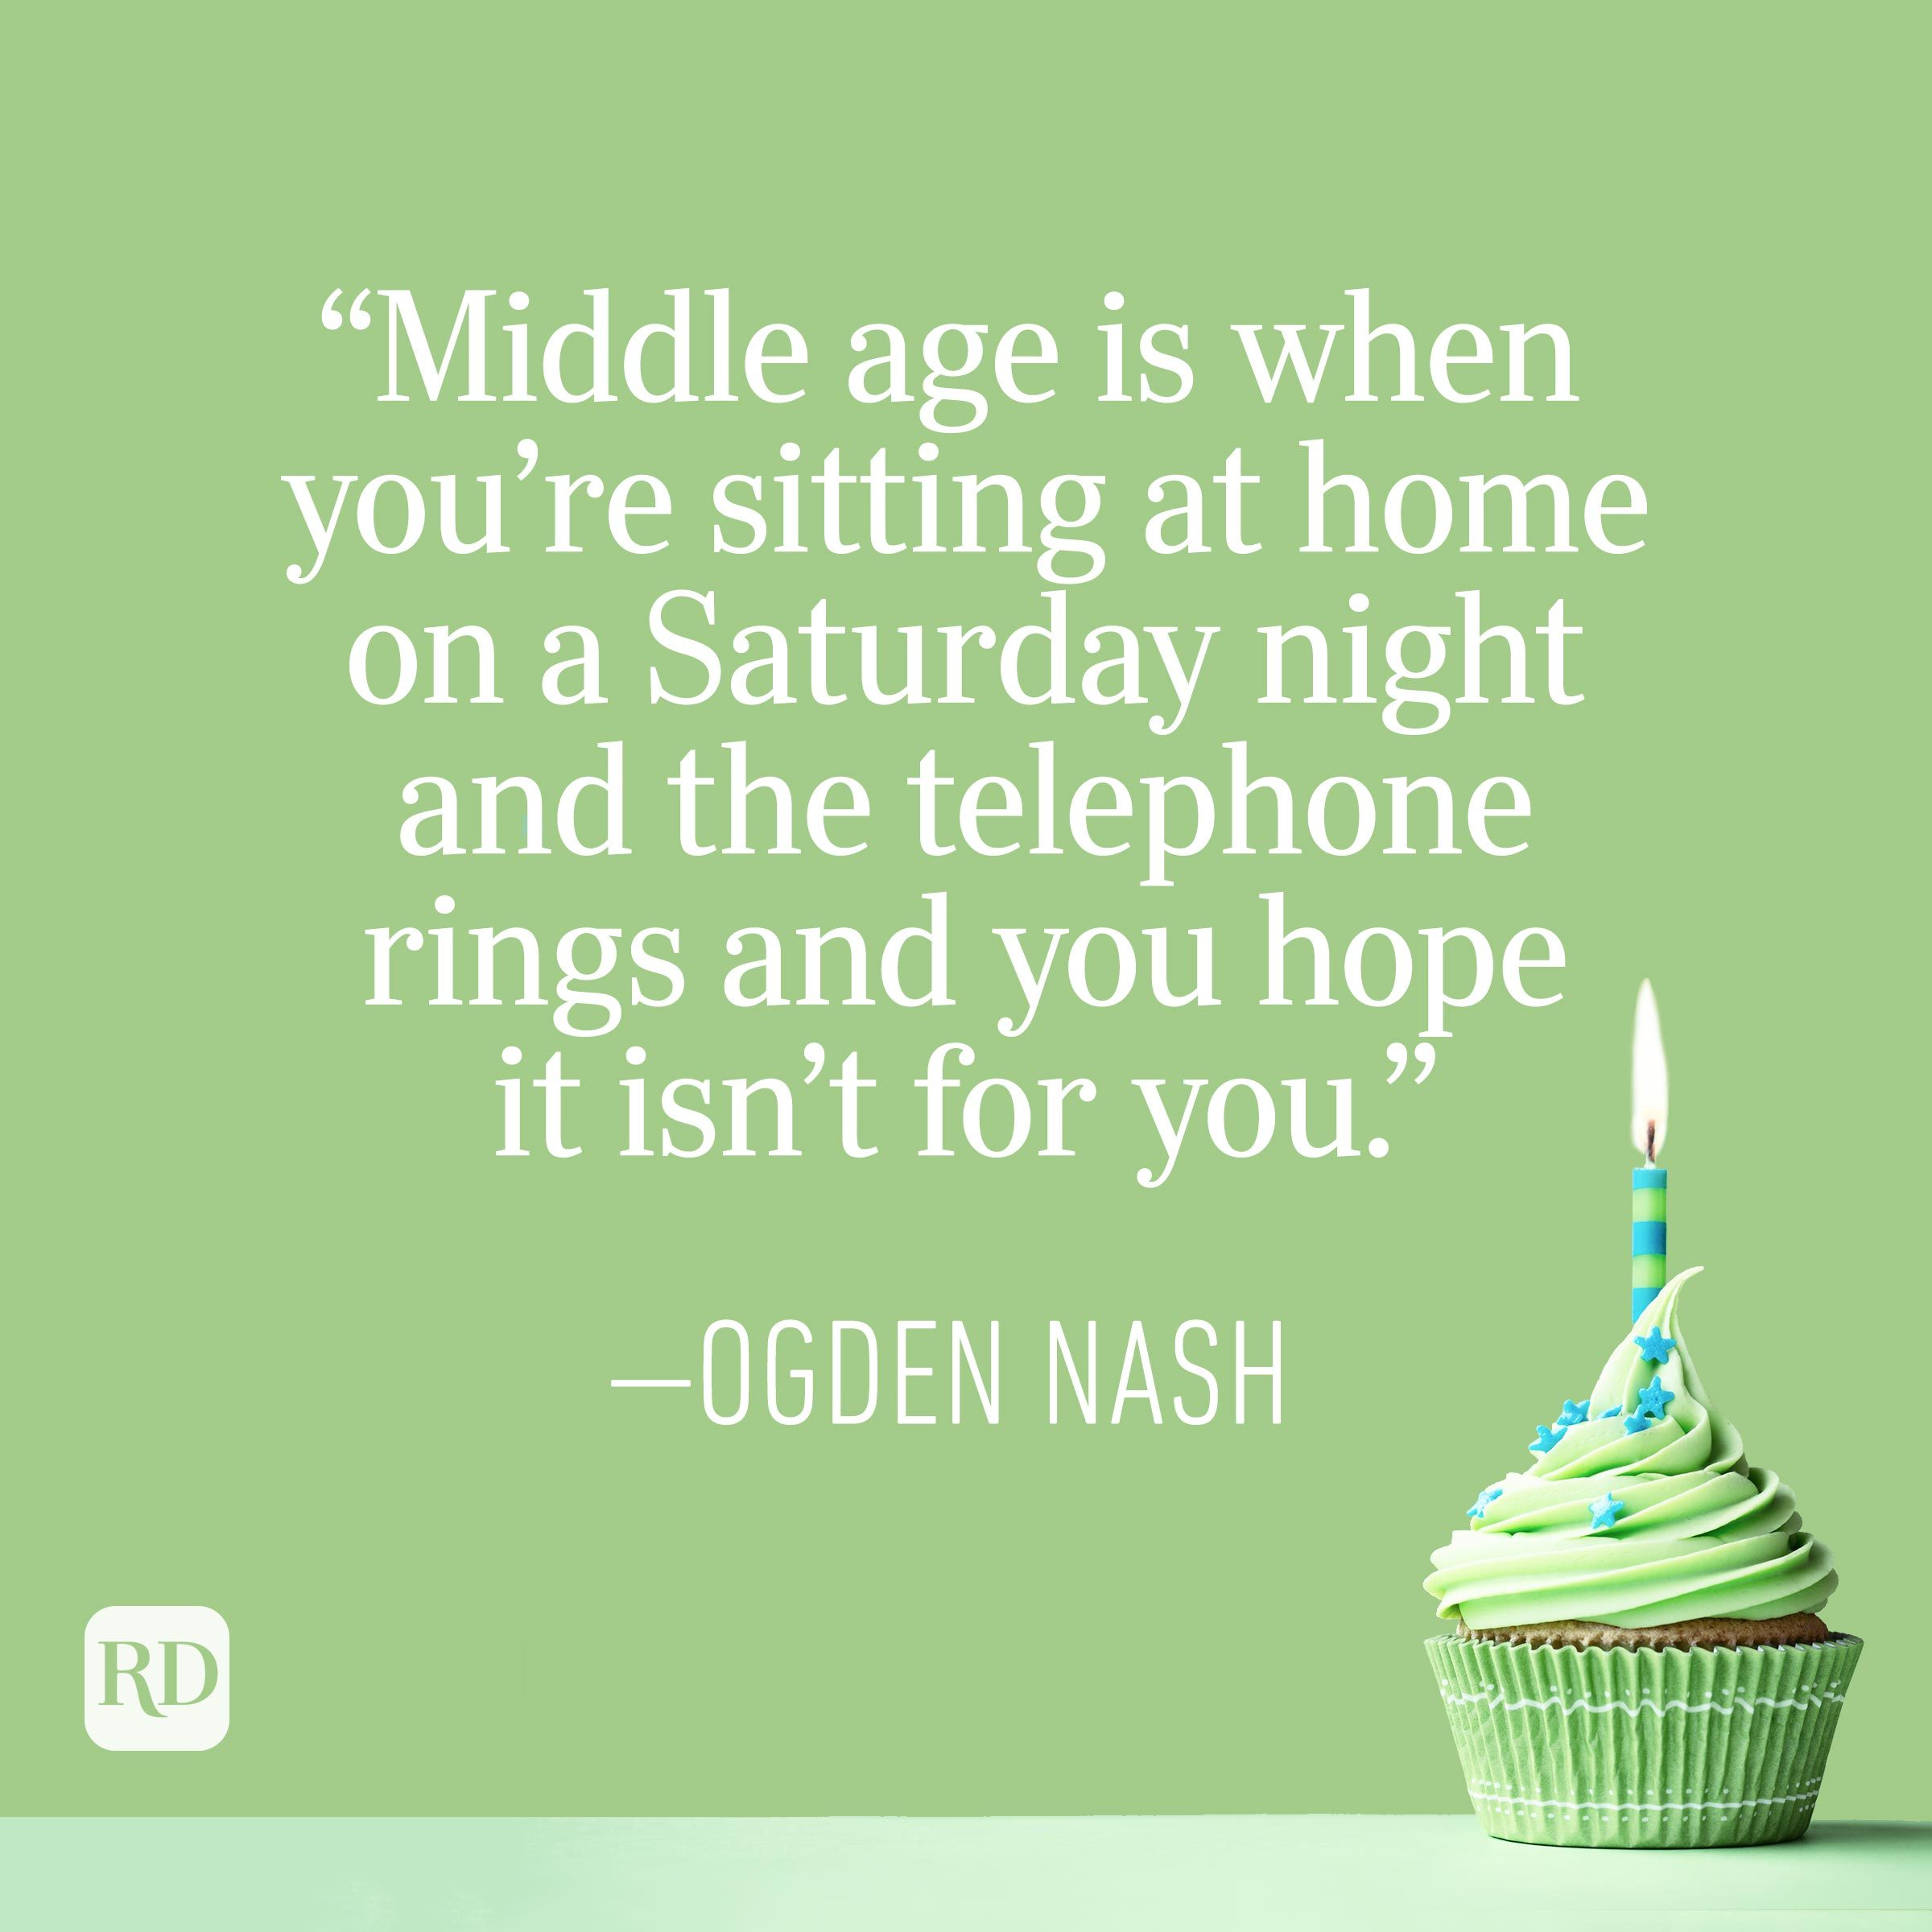 """""""Middle age is when you're sitting at home on a Saturday night and the telephone rings and you hope it isn't for you."""" — Ogden Nash"""